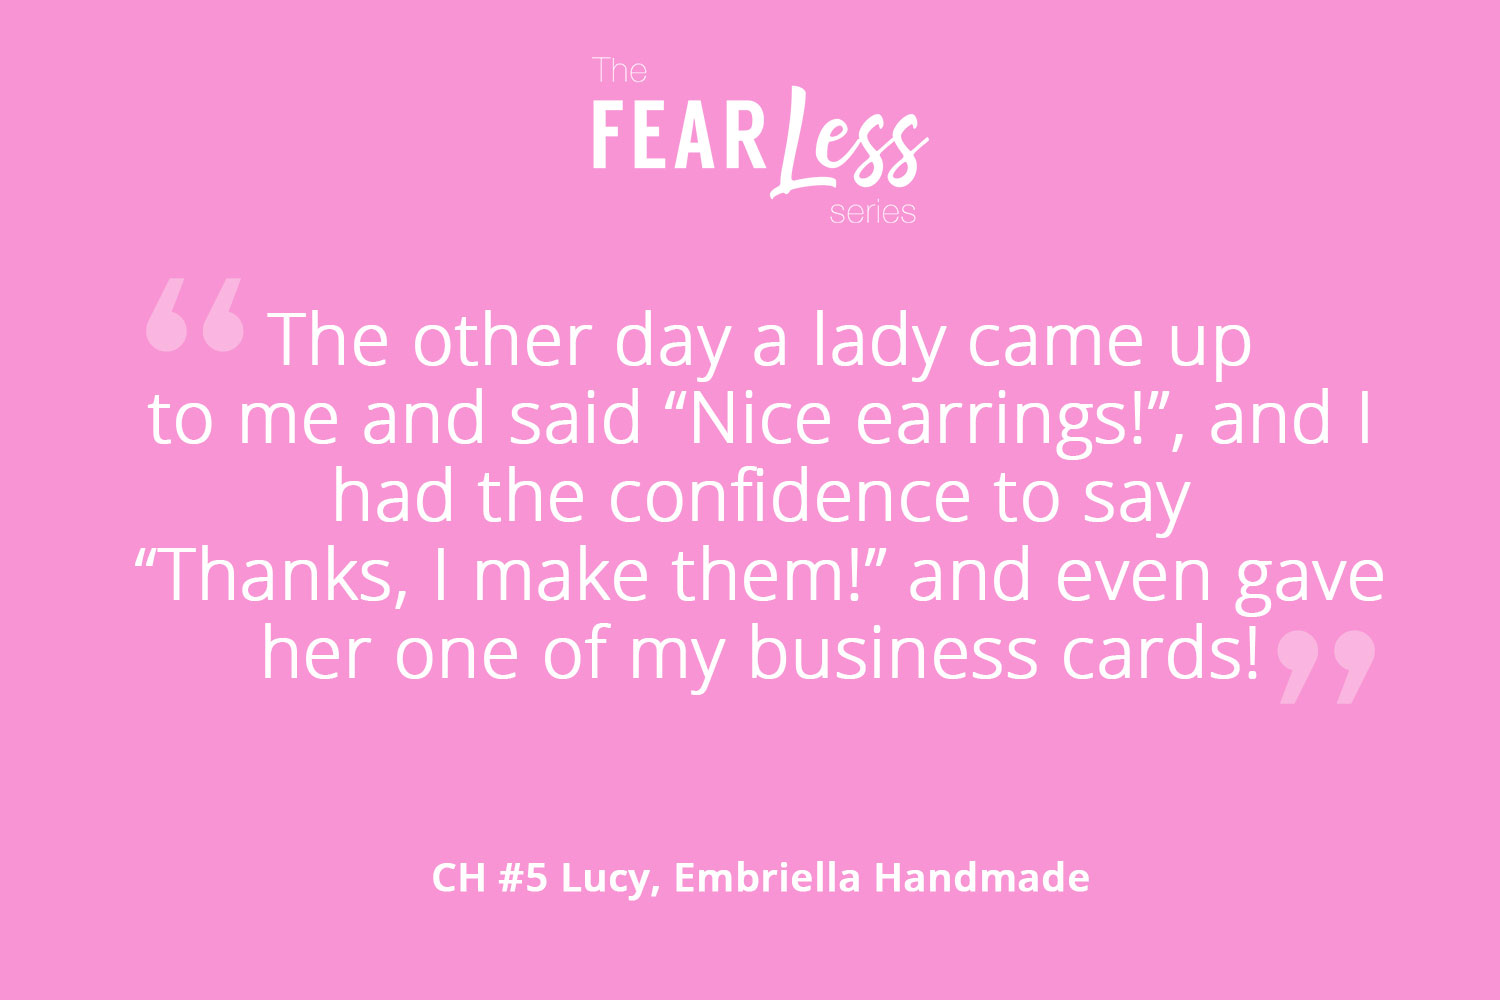 Embriella Handmade - Chapter 5 - Fear Less Series